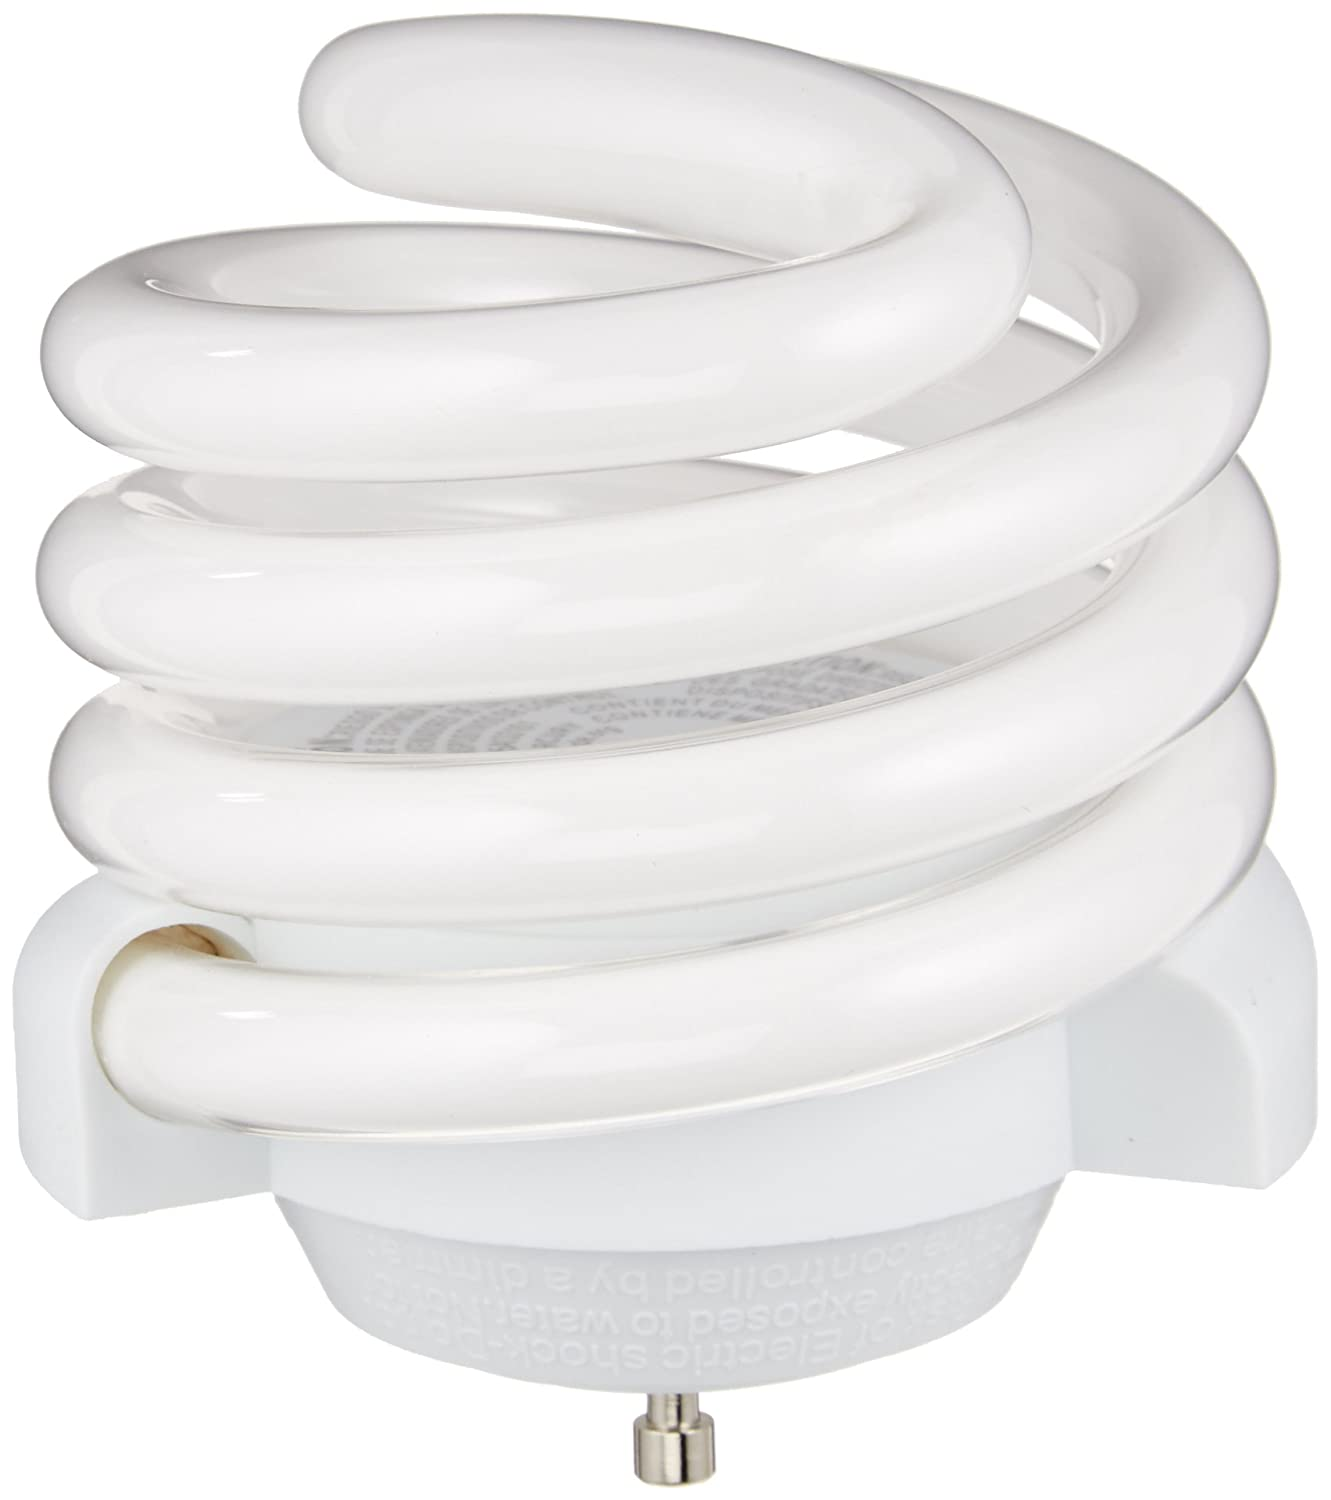 fan mount profile regard ceiling low with interesting bay light to bulbs flush hampton bulb hugger remarkable lights fans